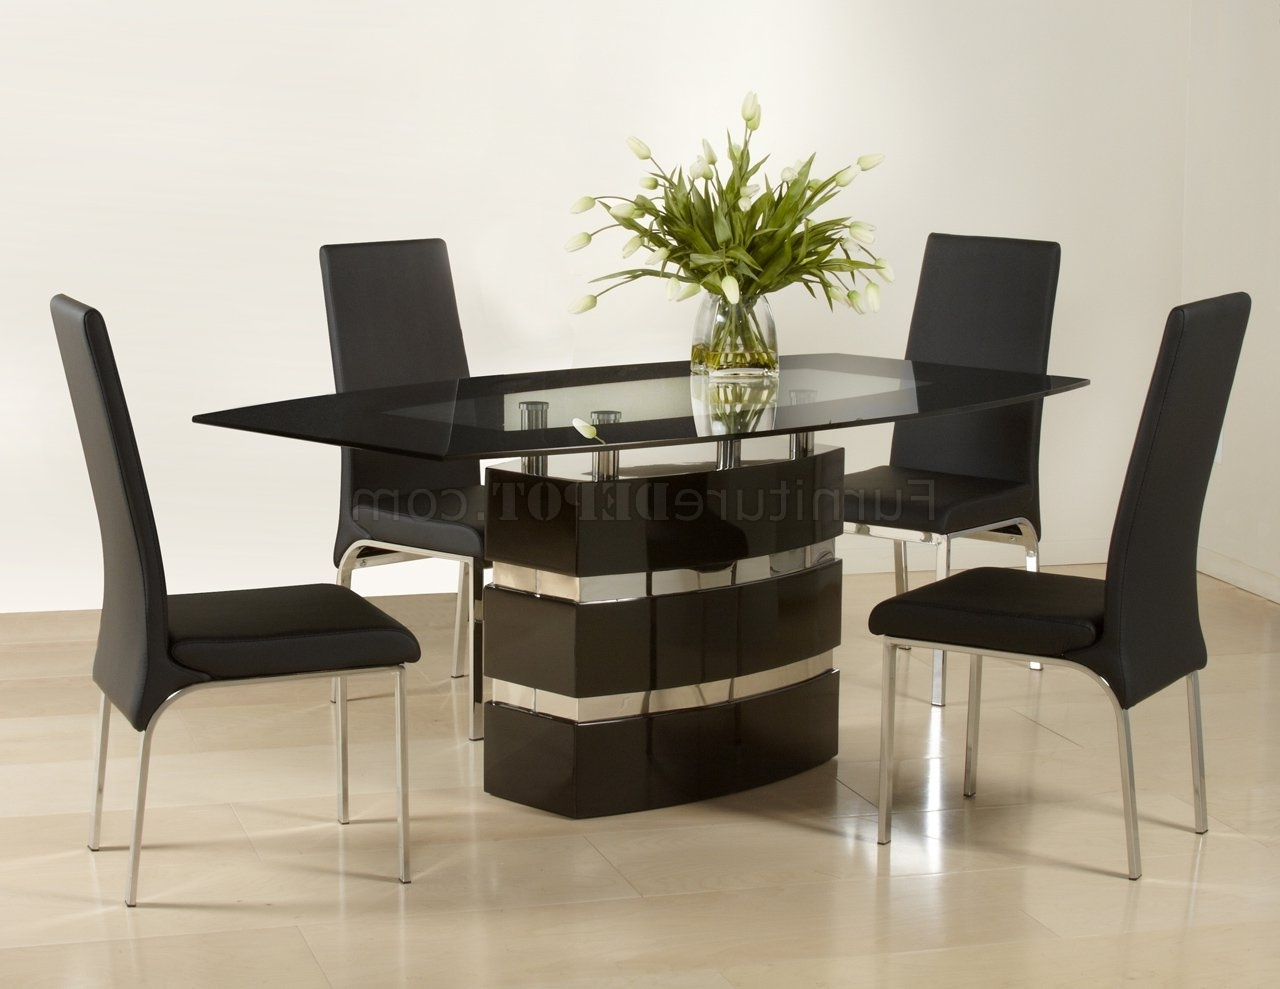 Most Up To Date Black High Gloss Finish Modern Dining Table W/optional Chairs For Black High Gloss Dining Chairs (Gallery 17 of 25)